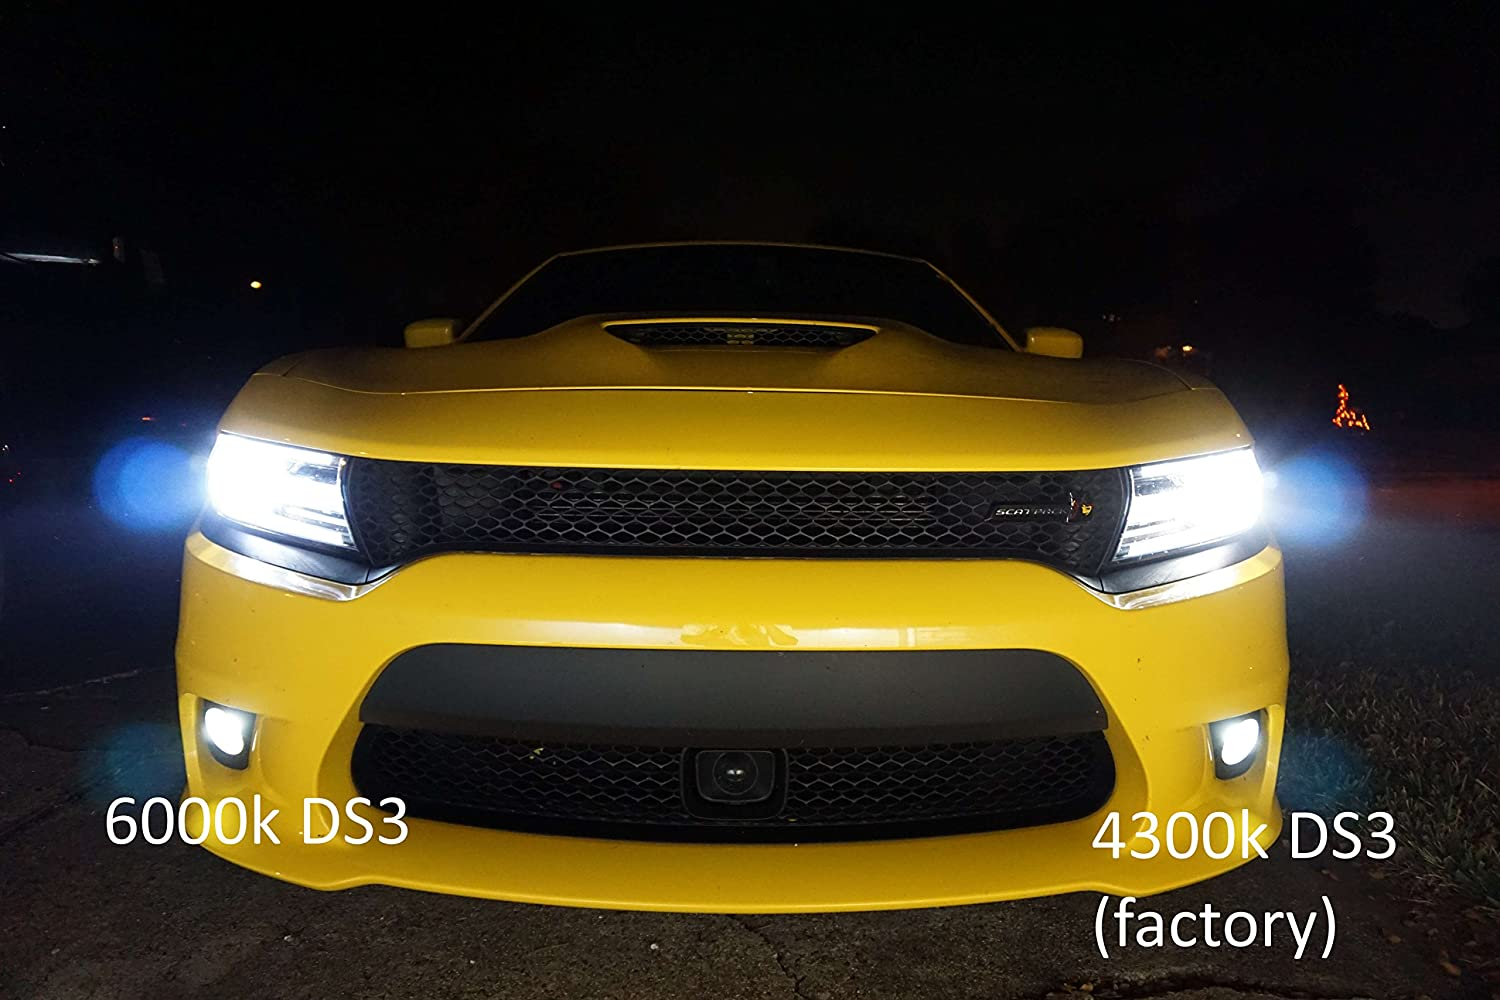 8000k DS3 4350356369 for Factory equipped HID vehicles MaxBeam 8000k DS3 HID 35w Xenon Bulbs 2 Pack